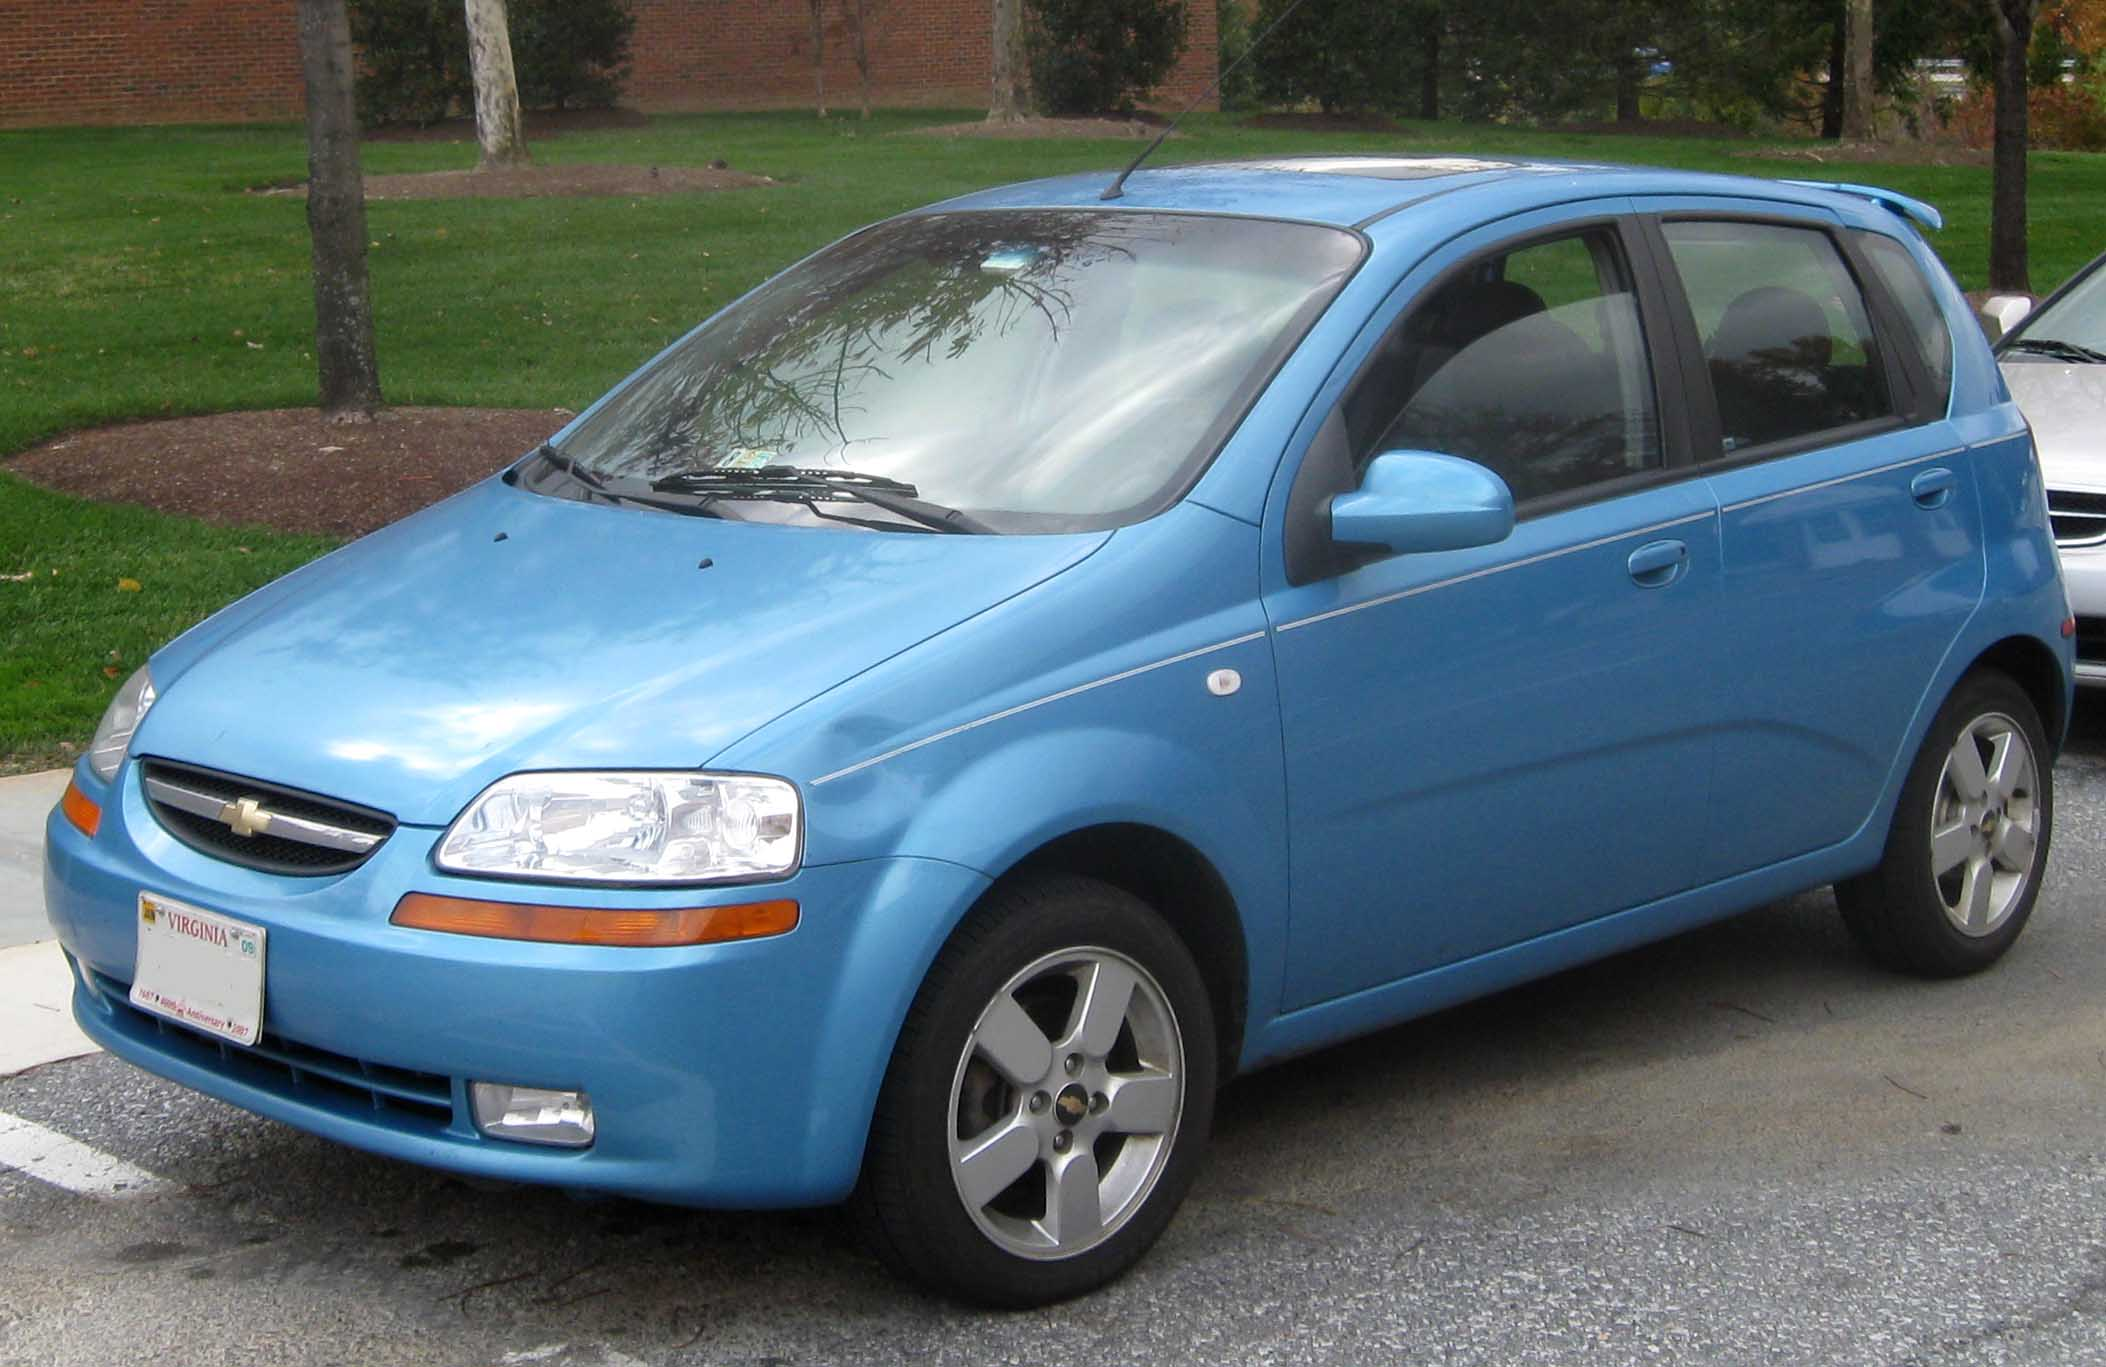 2008 chevrolet aveo information and photos zombiedrive rh zombdrive com 2008 chevrolet aveo manual 2008 chevy aveo manual transmission linkage